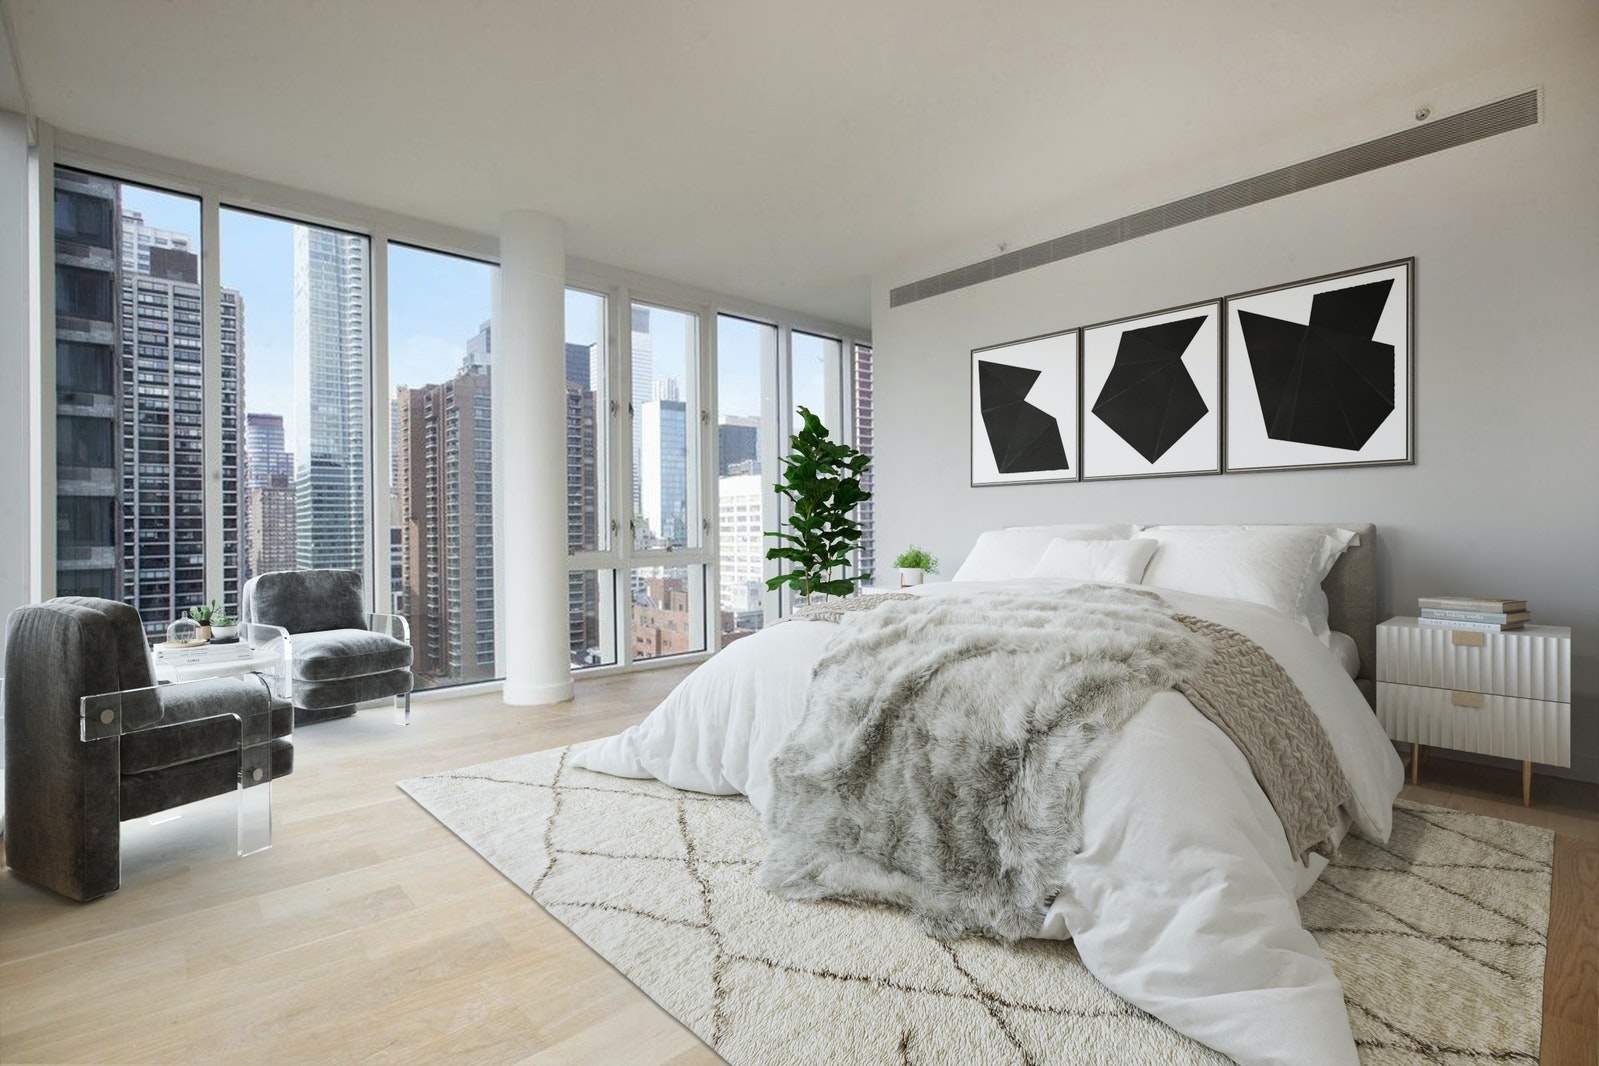 301 East 61st Street 15b, Upper East Side, NYC, 10065, $2,834,000, Property For Sale, Halstead Real Estate, Photo 2